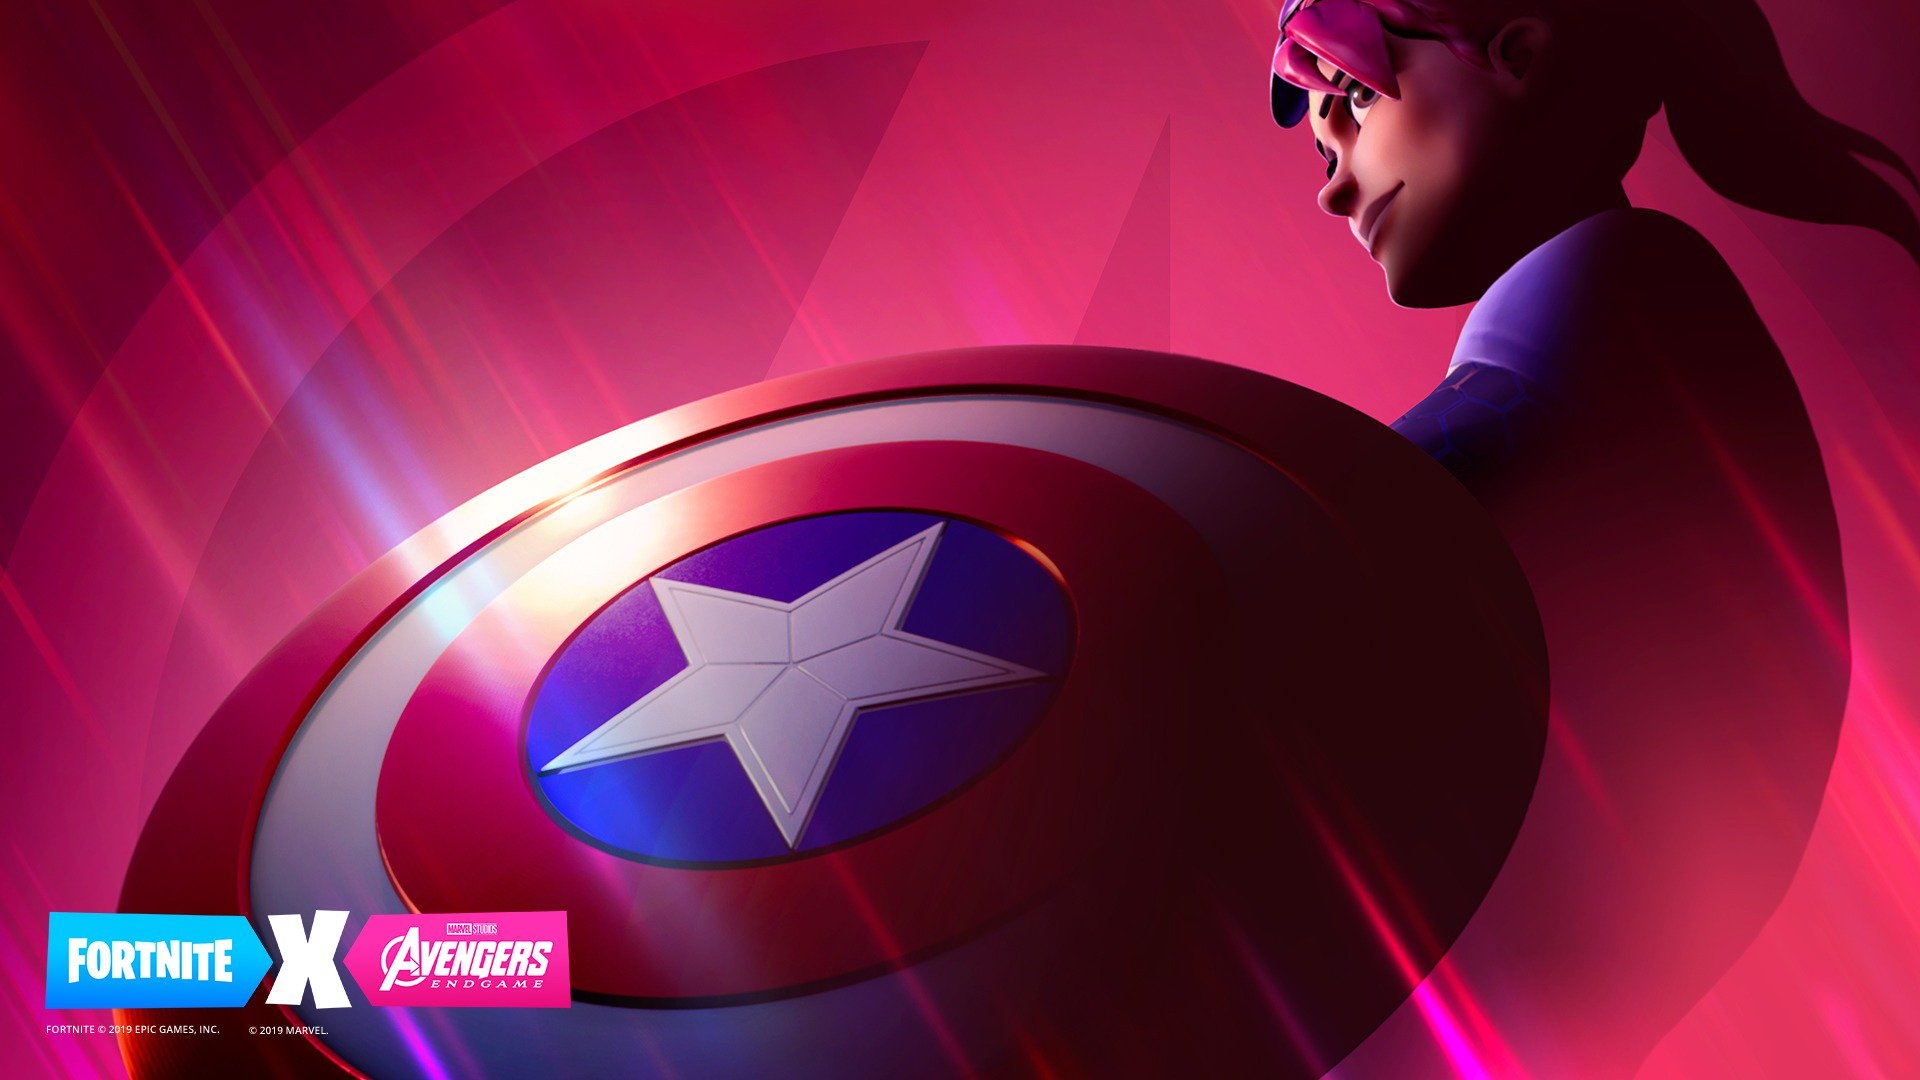 Avengers Endgame Fortnite HD Wallpaper